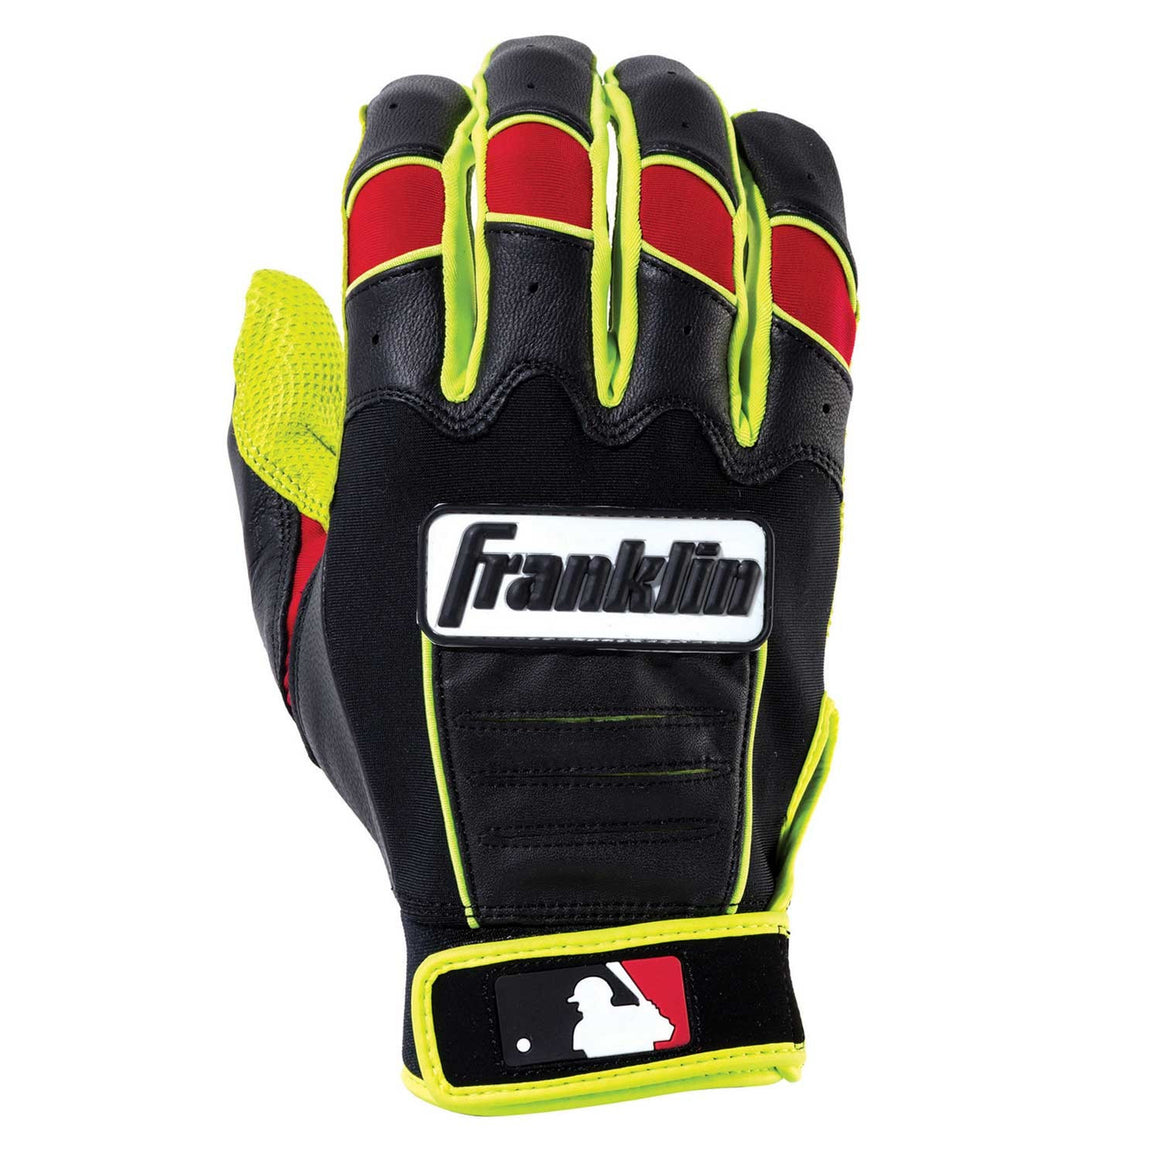 Franklin MLB CFX Pro Revolt Youth Batting Gloves, Optic Yellow/Black/Red, Size Medium